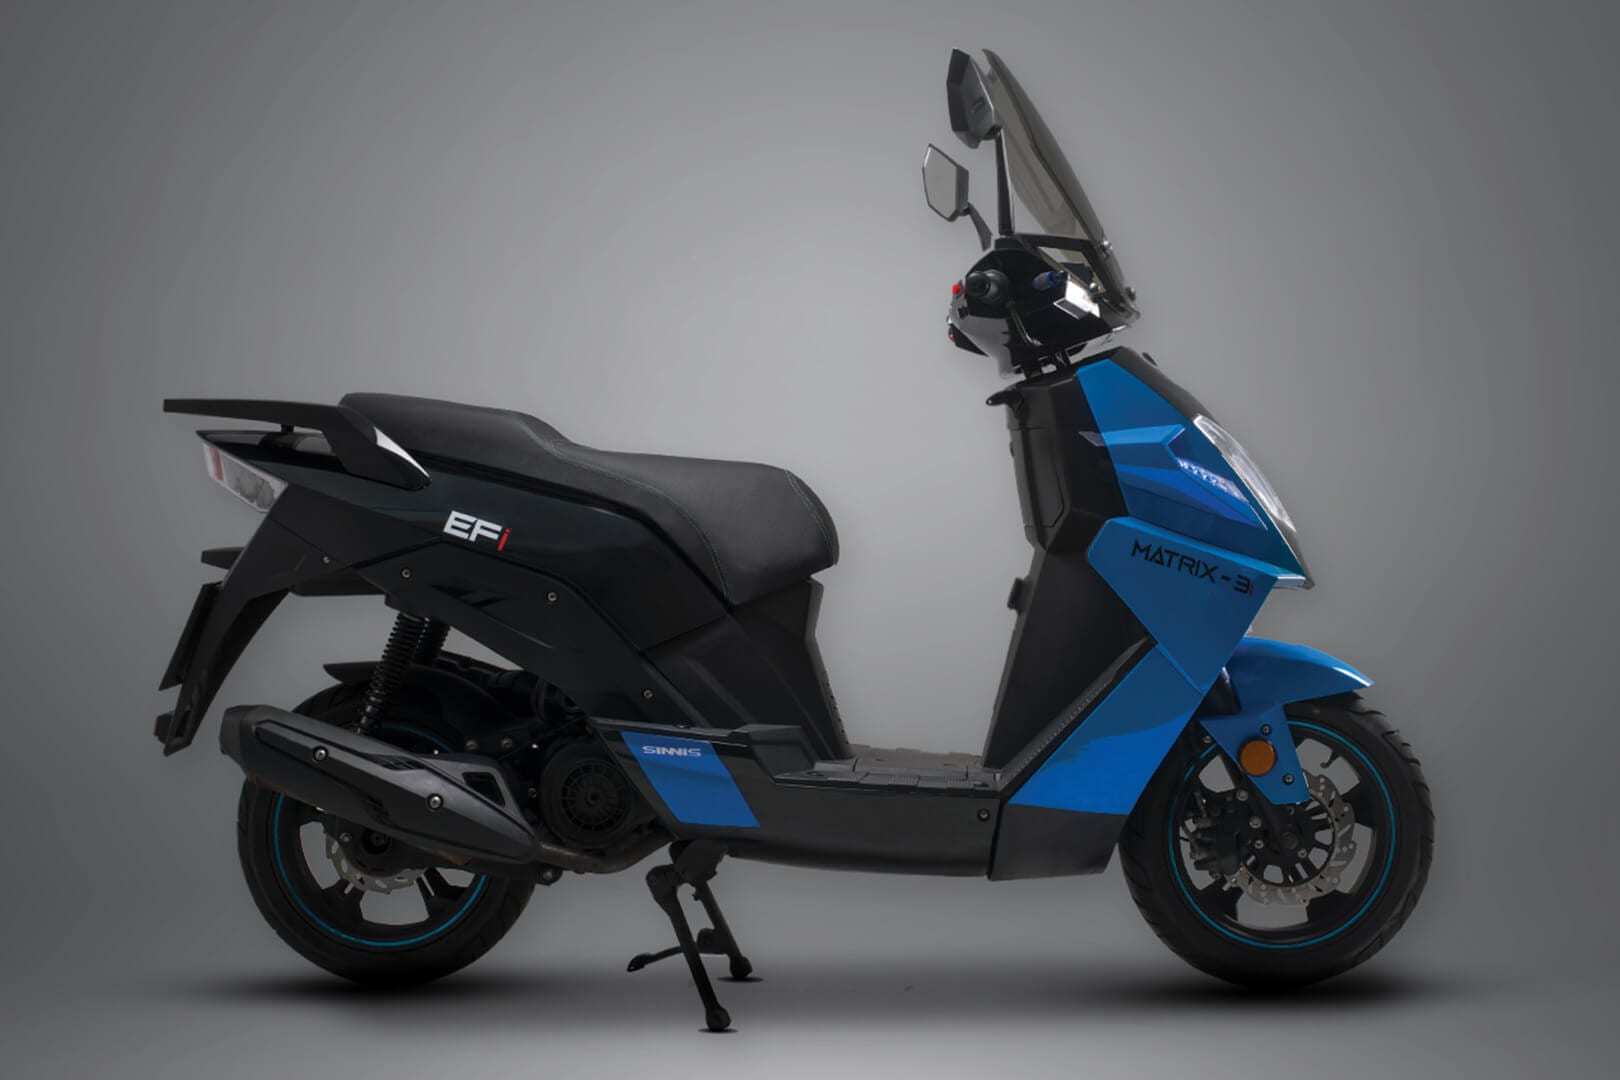 Sinnis Matrix-3i utlra blue 125cc Scooter Studio Image